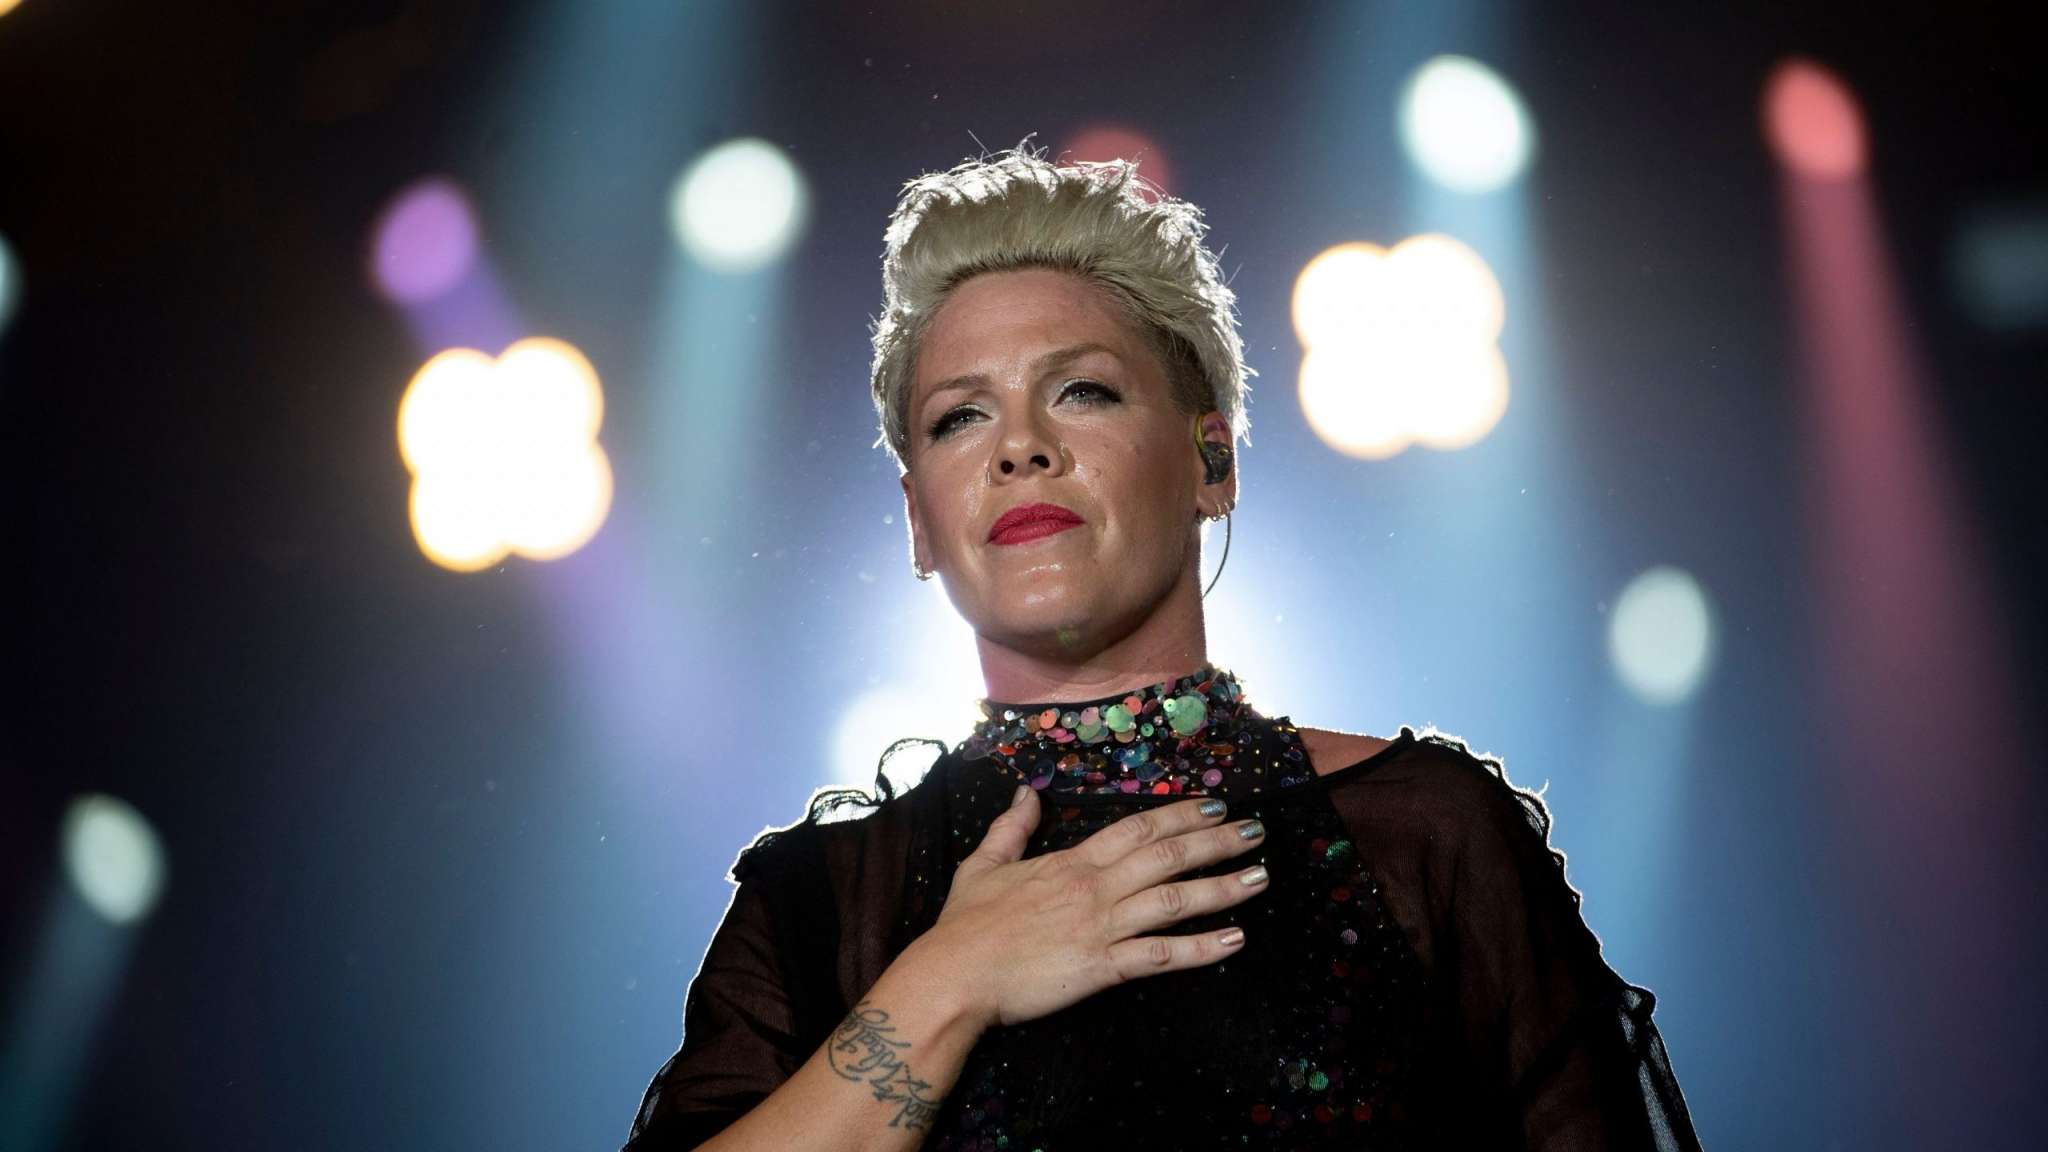 pink-says-she-feels-guilty-for-not-reaching-out-and-helping-britney-spears-more-in-the-past-after-watching-her-documentary